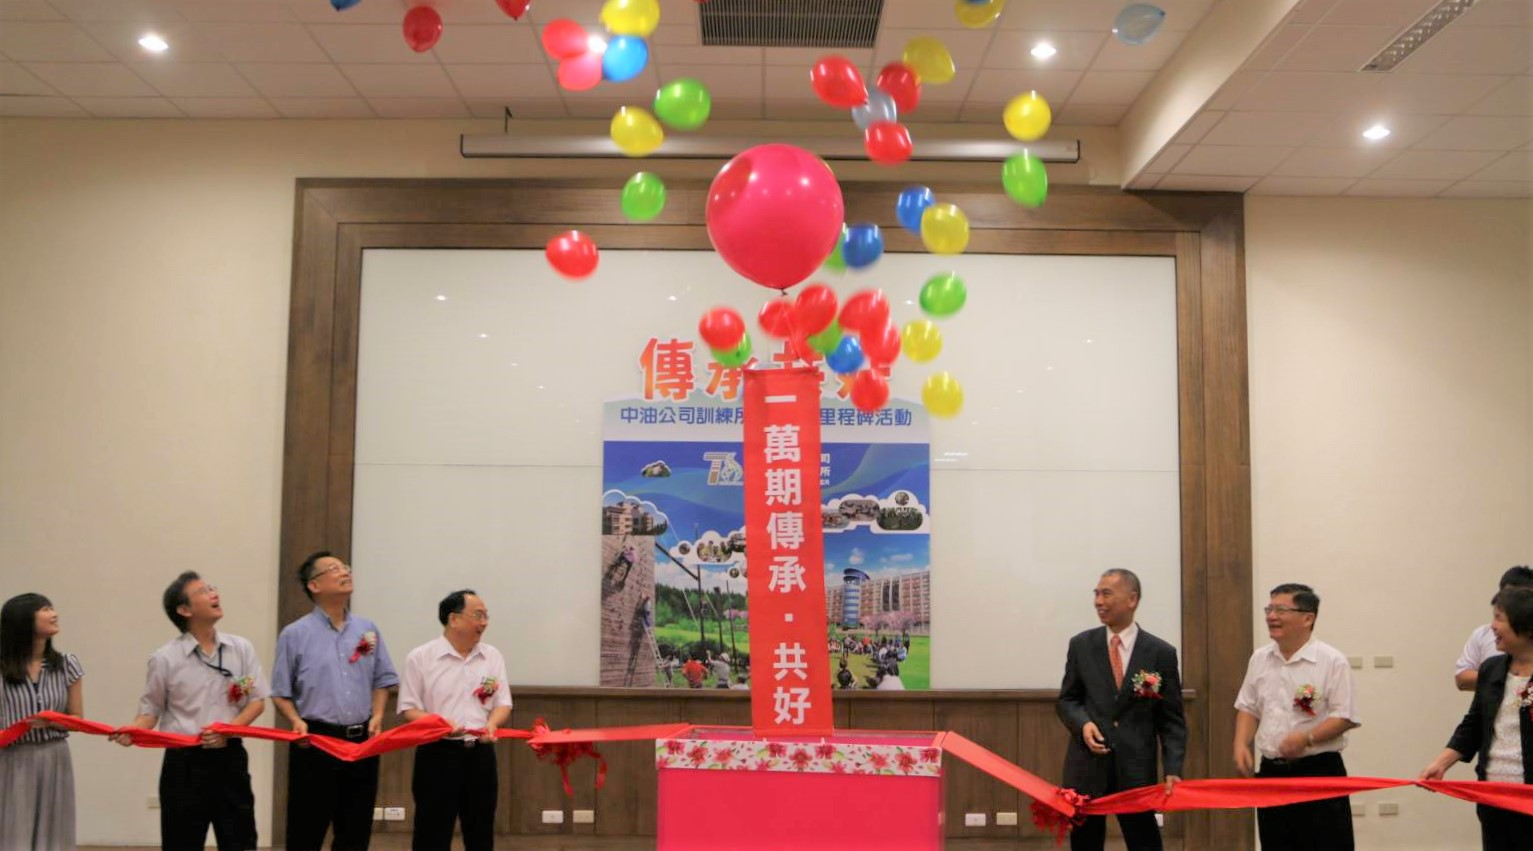 """Heritage and common good"" – The Training Center of CPC, Taiwan, celebrated the hundred thousandth seminar, inviting you to change the world by learning"